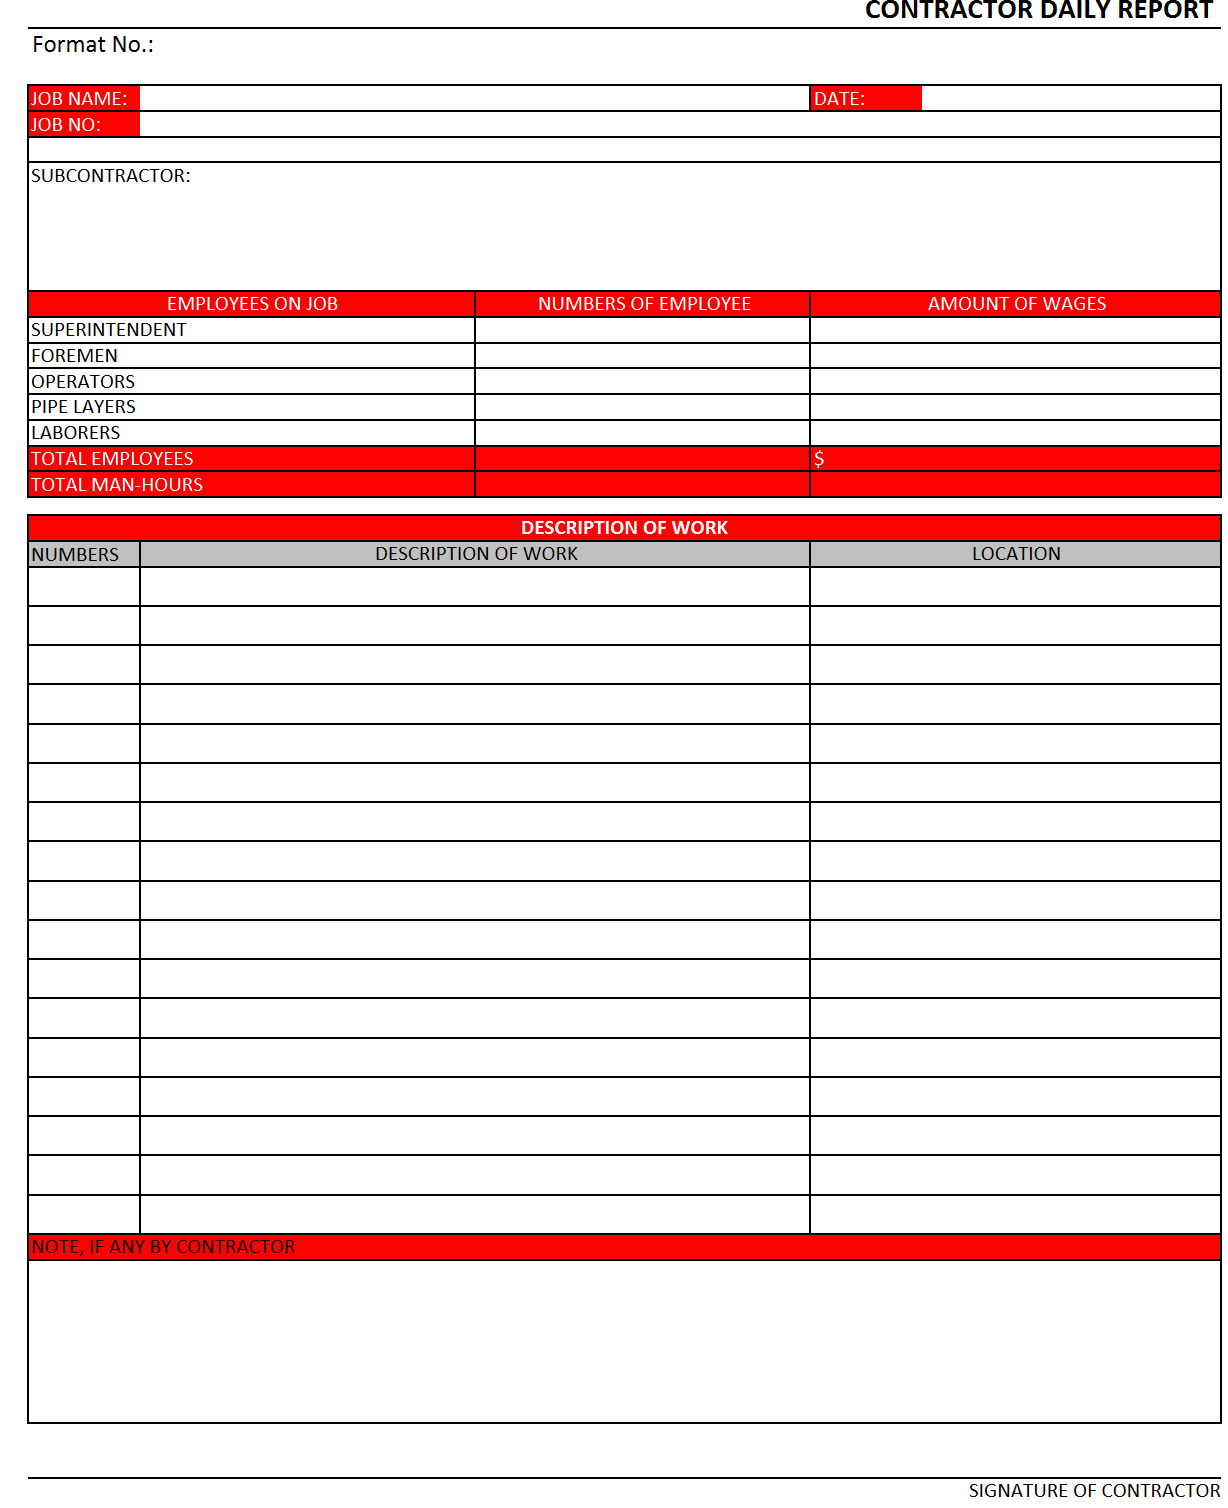 Contractor Daily Report